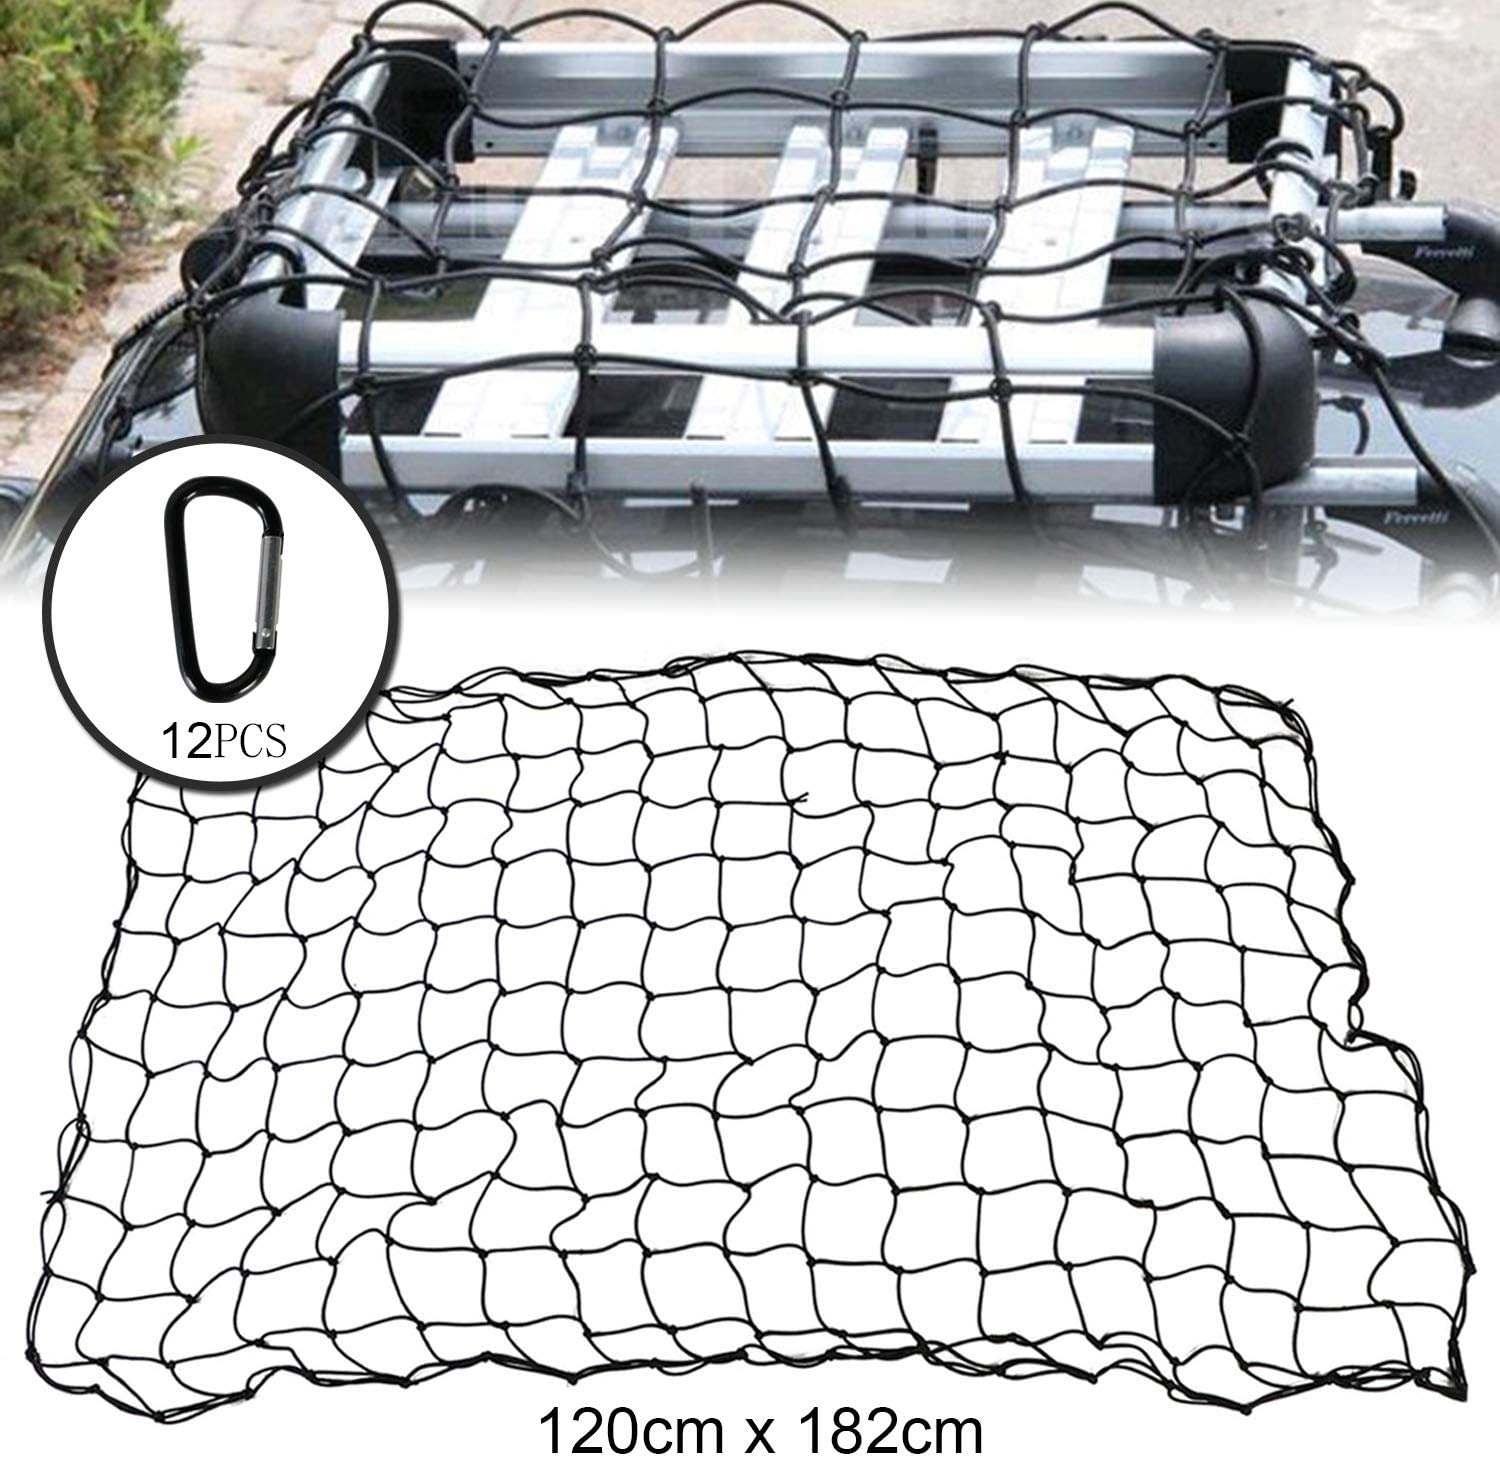 """4 X 6 Super Duty Truck Cargo Net Max Stretches to 8 X 12 with 12 Tangle-Free Carabiners Cargo Net HuaZoon Truck Nets 4/""""x4/""""Bungee Net Mesh Holds Loads Tighter Steel"""